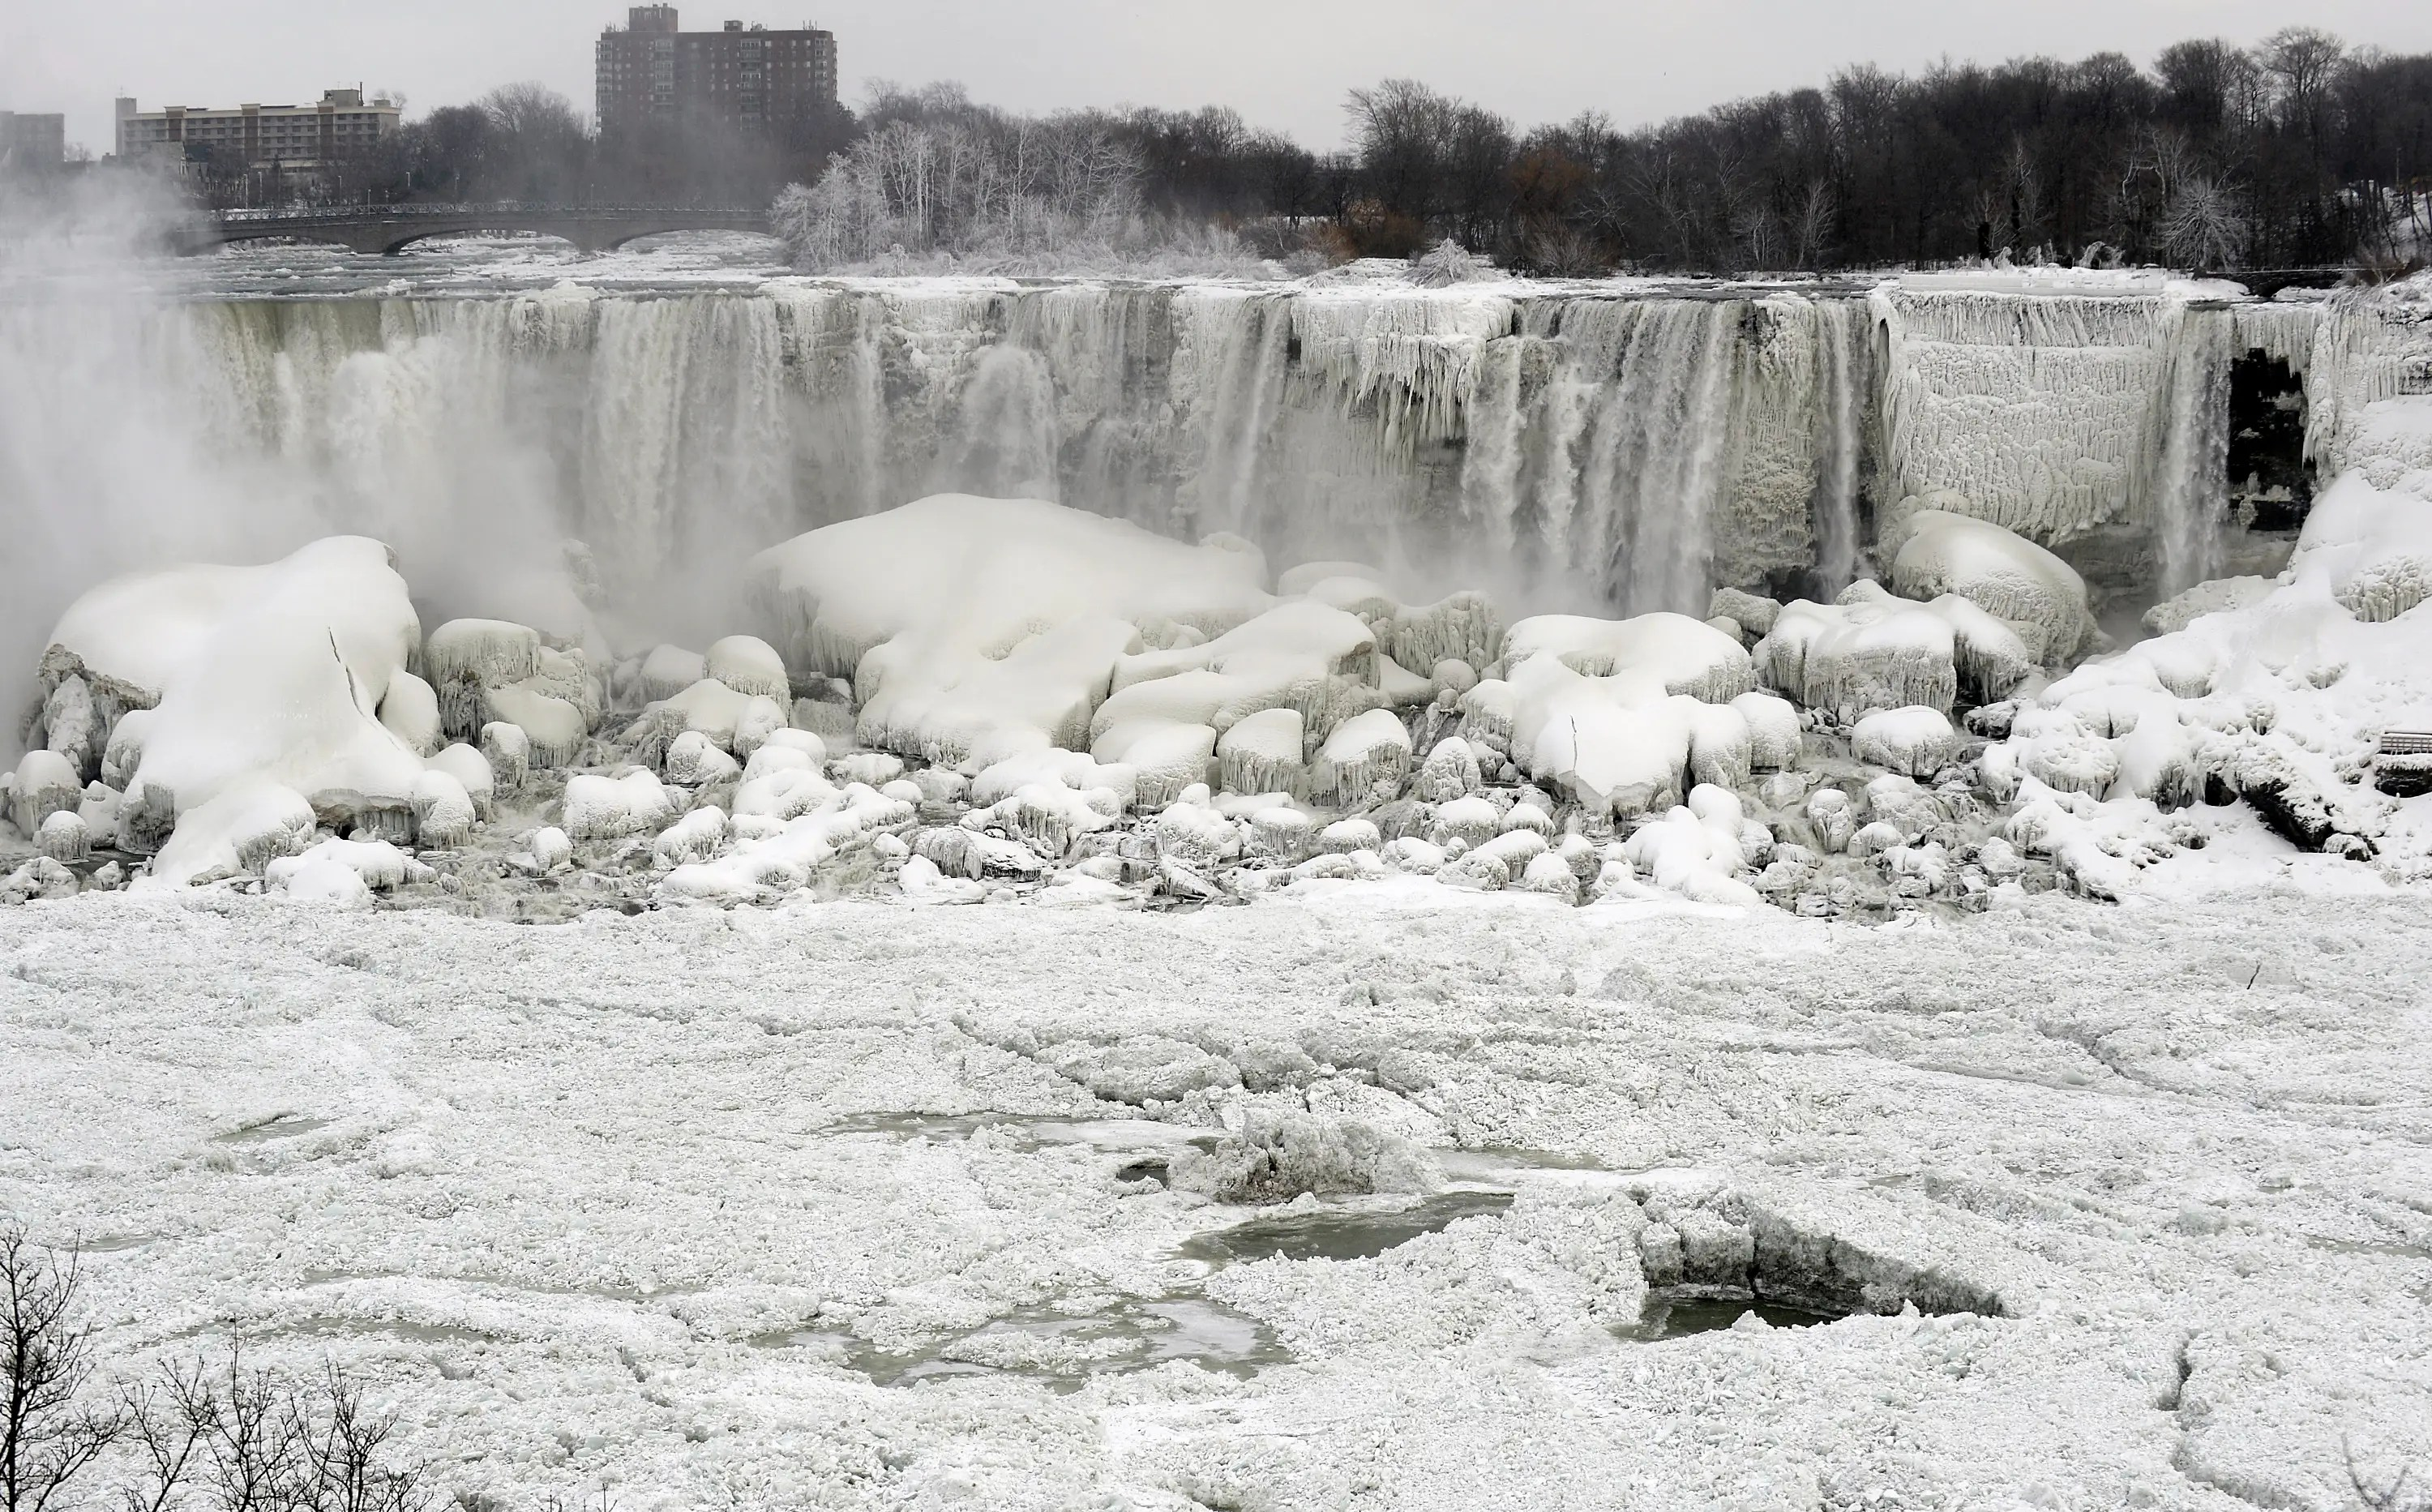 Contrary to some reports, Niagara Falls didn't totally freeze, but the polar vortex formed enough ice to create some spectacular images.